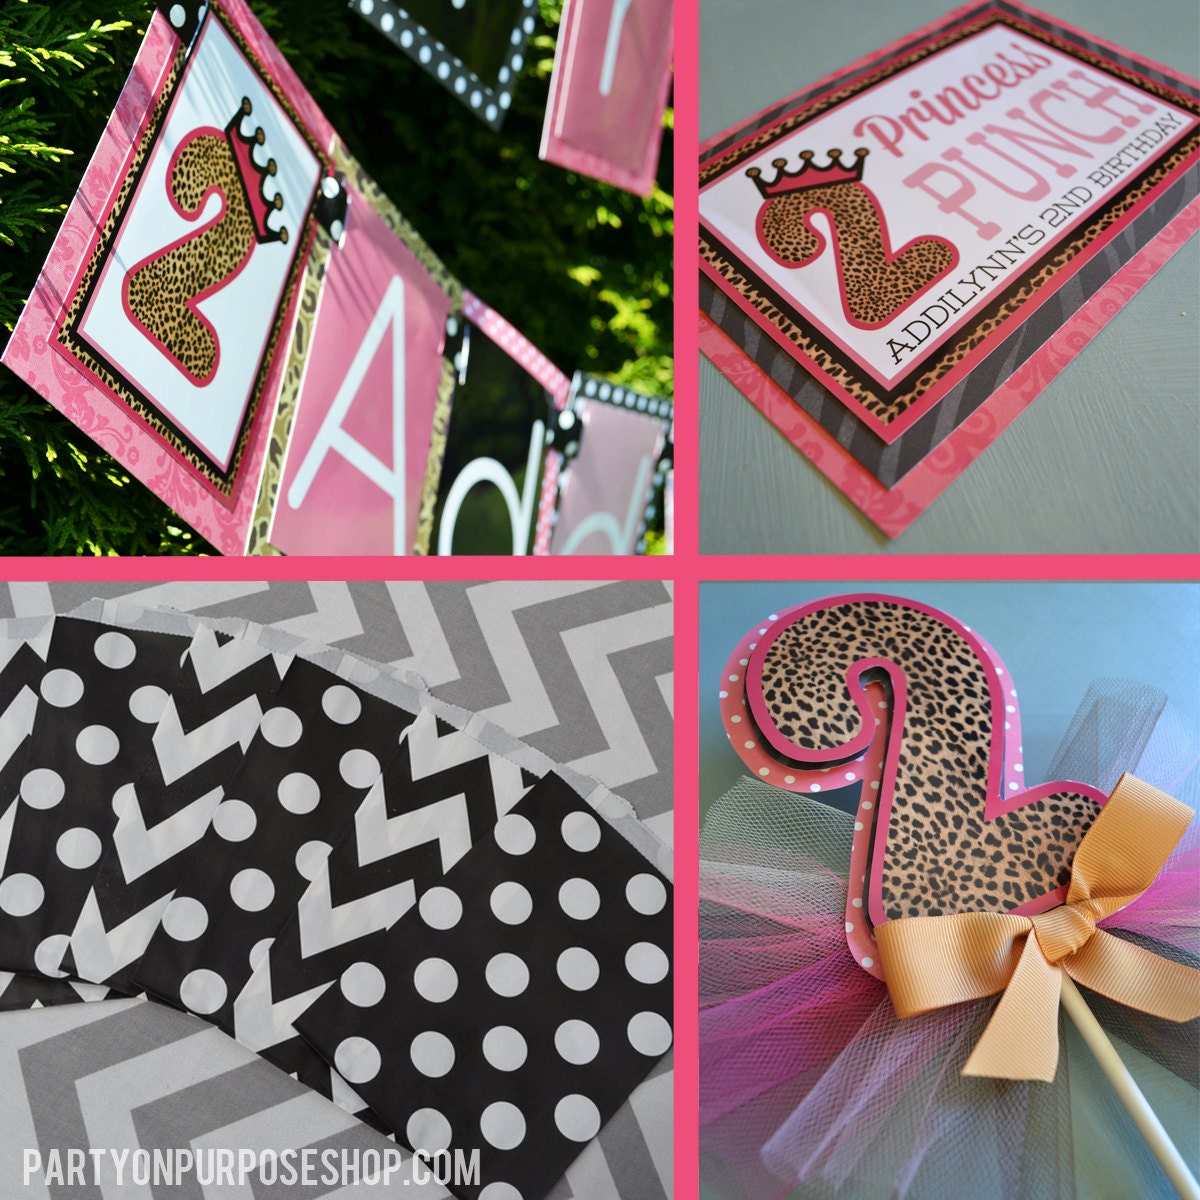 Leopard print princess birthday party decorations pink black for Animal print party decoration ideas